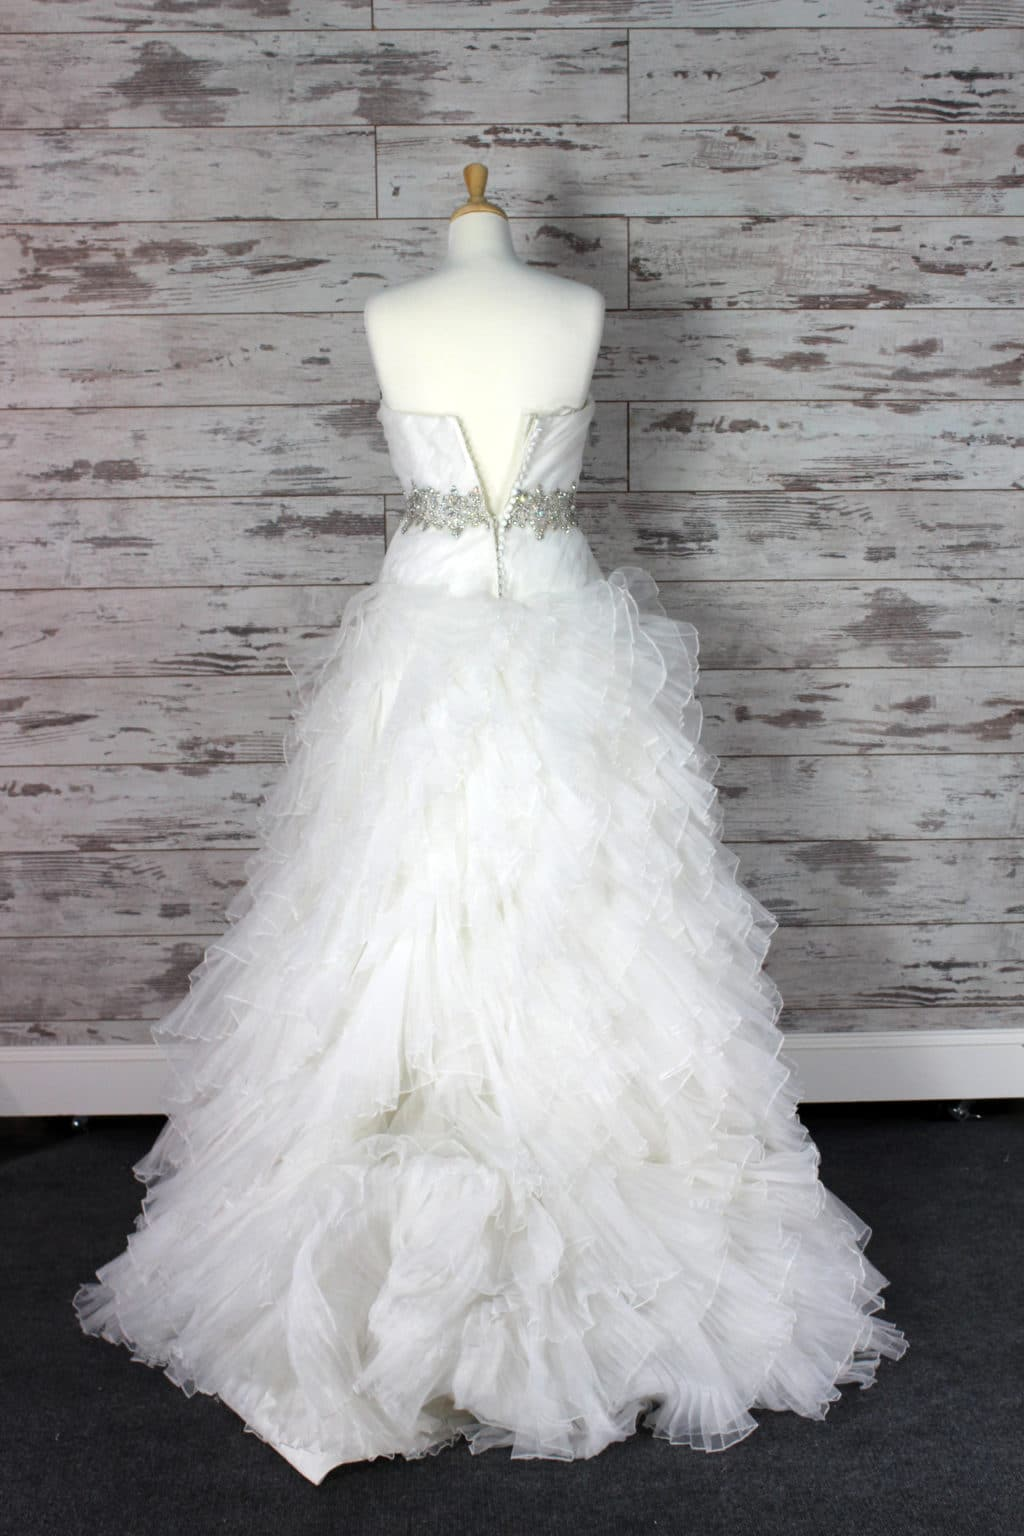 Allure Bridals Sweetheart (Strapless) Wedding Dress Size